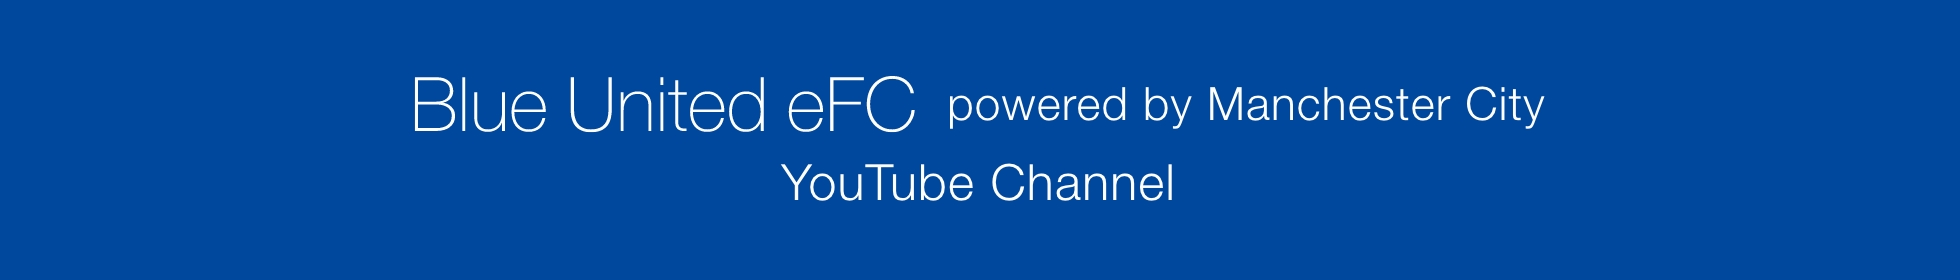 BLUE UNITED eFC YouTube Channel